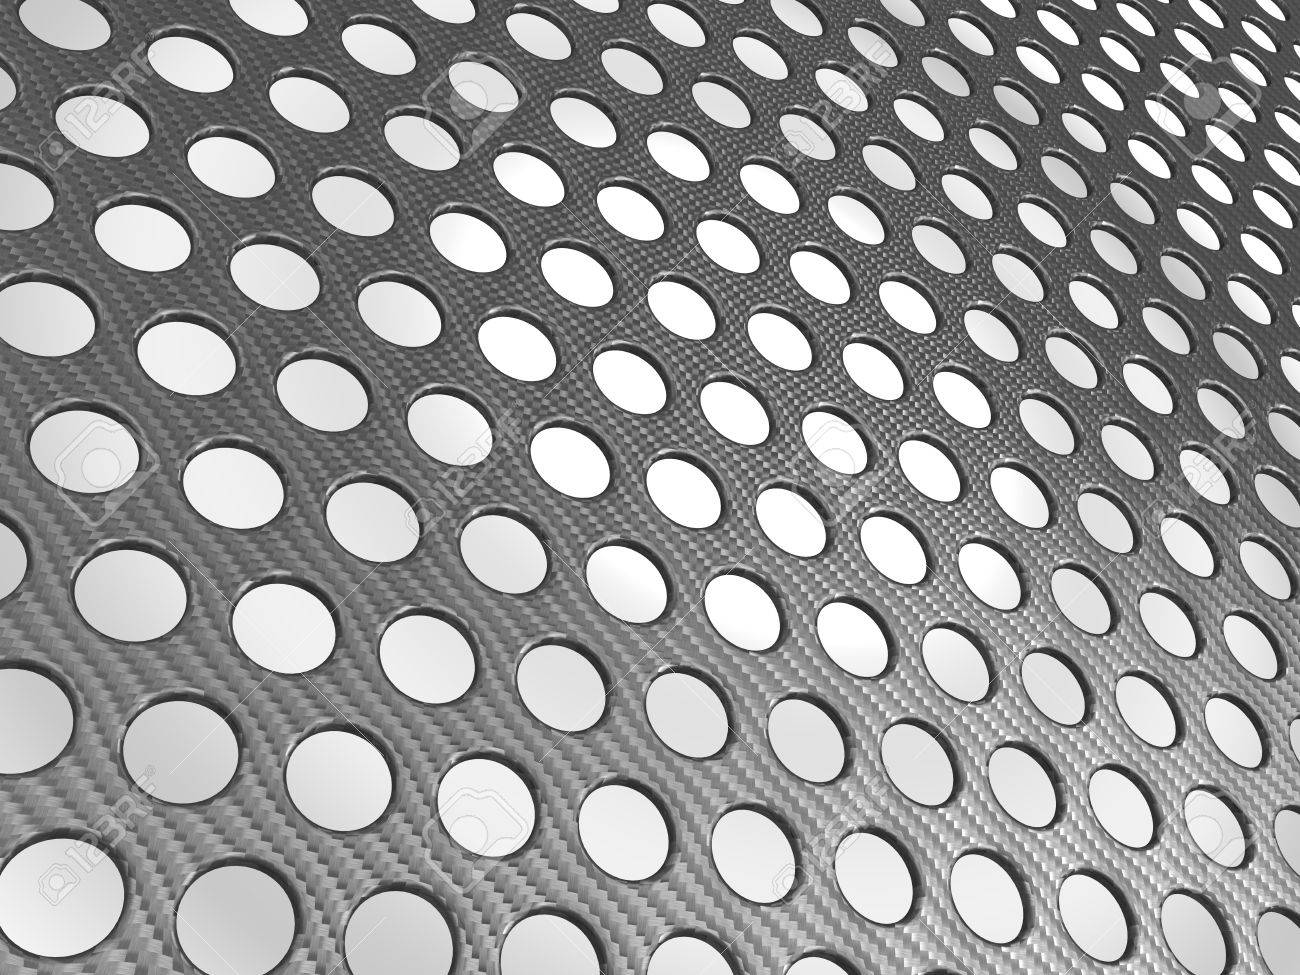 Carbon fibre surface perforated over studio light background Stock Photo - 9458641